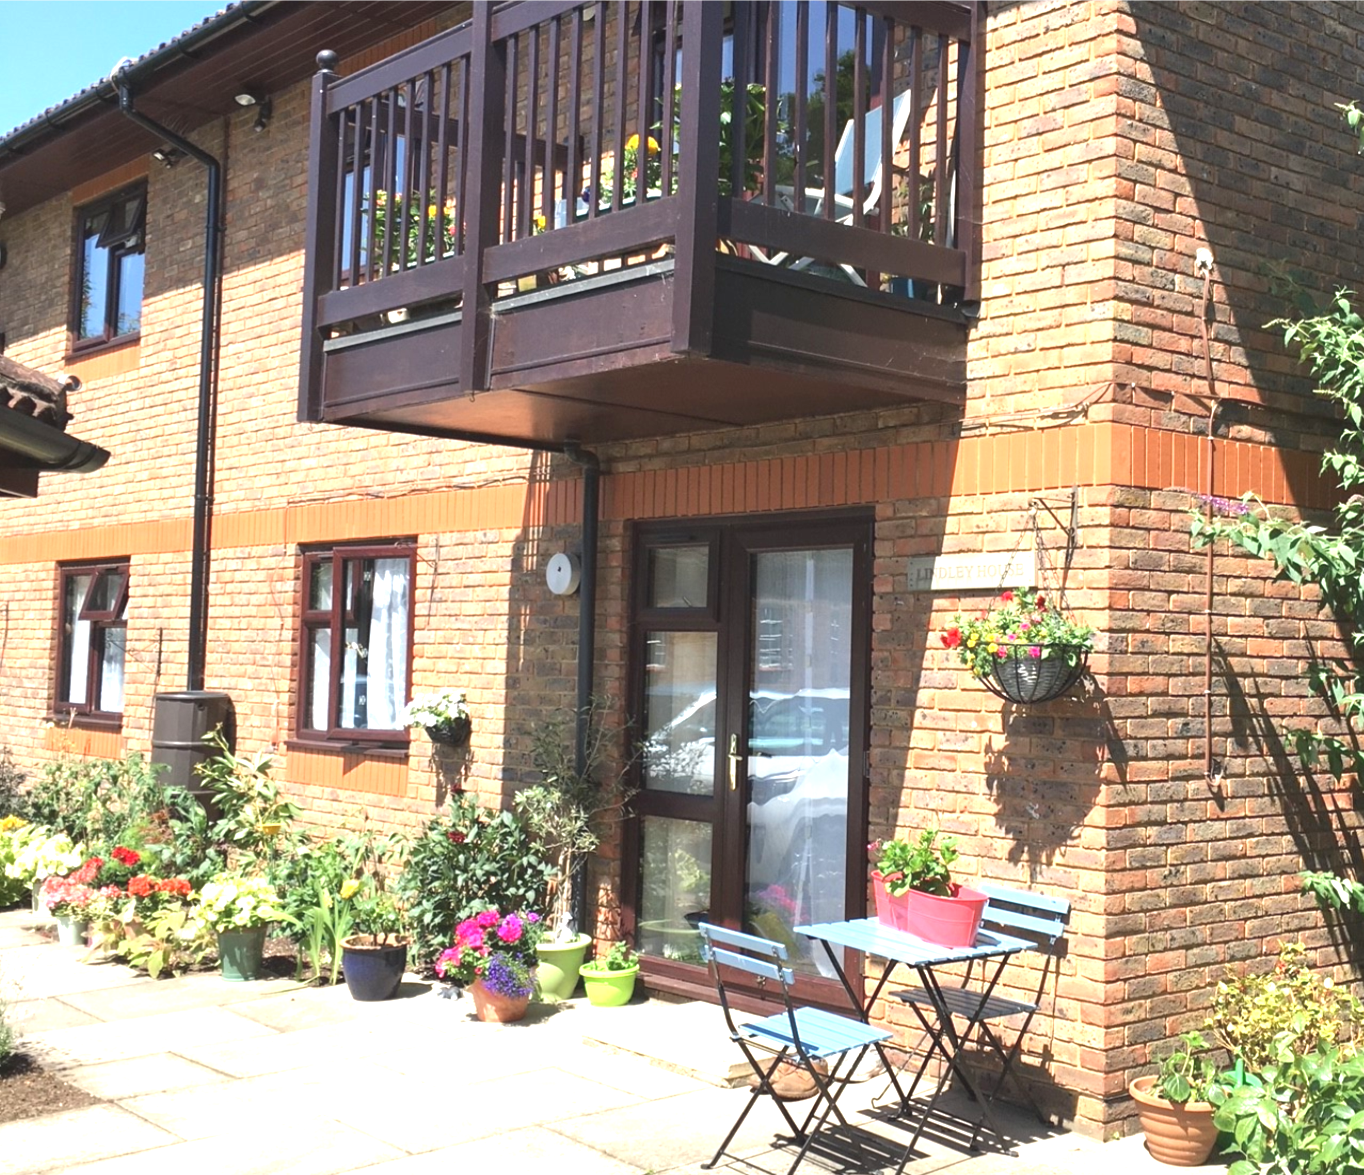 Modern, affordable apartments for the over 55s in the heart of West Byfleet